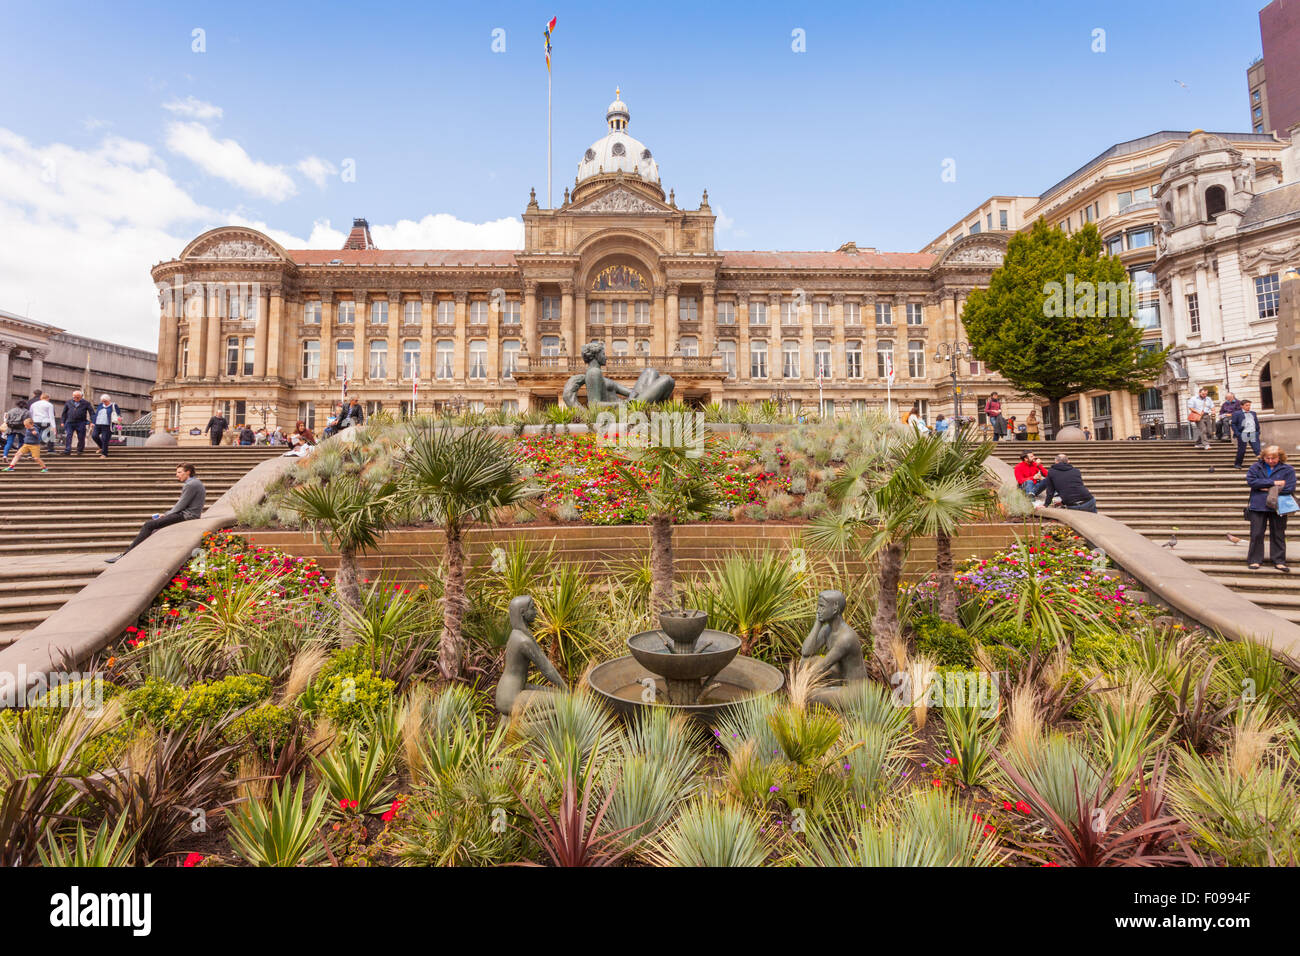 Foreground of the Victoria Square gardens, with the City Council buildings, Birmingham UK - Stock Image